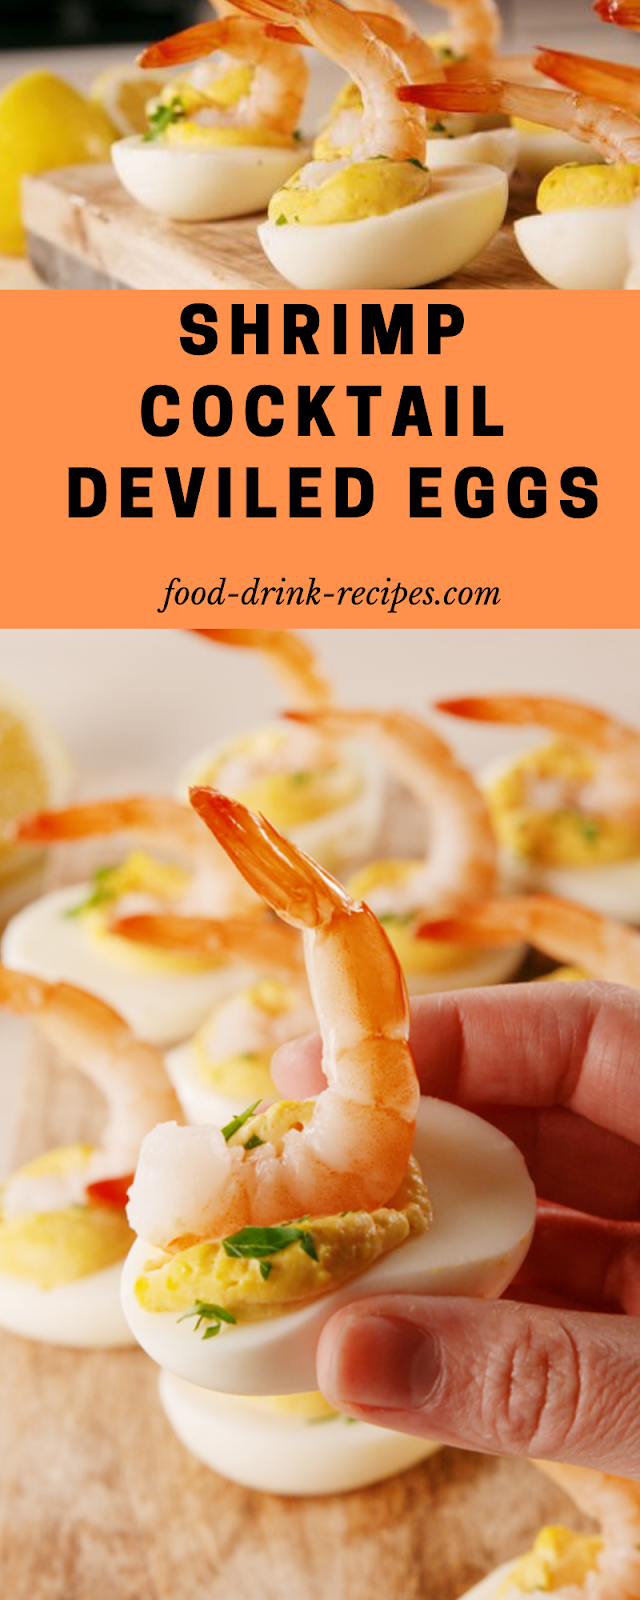 Shrimp Cocktail Deviled Eggs - food-drink-recipes.com